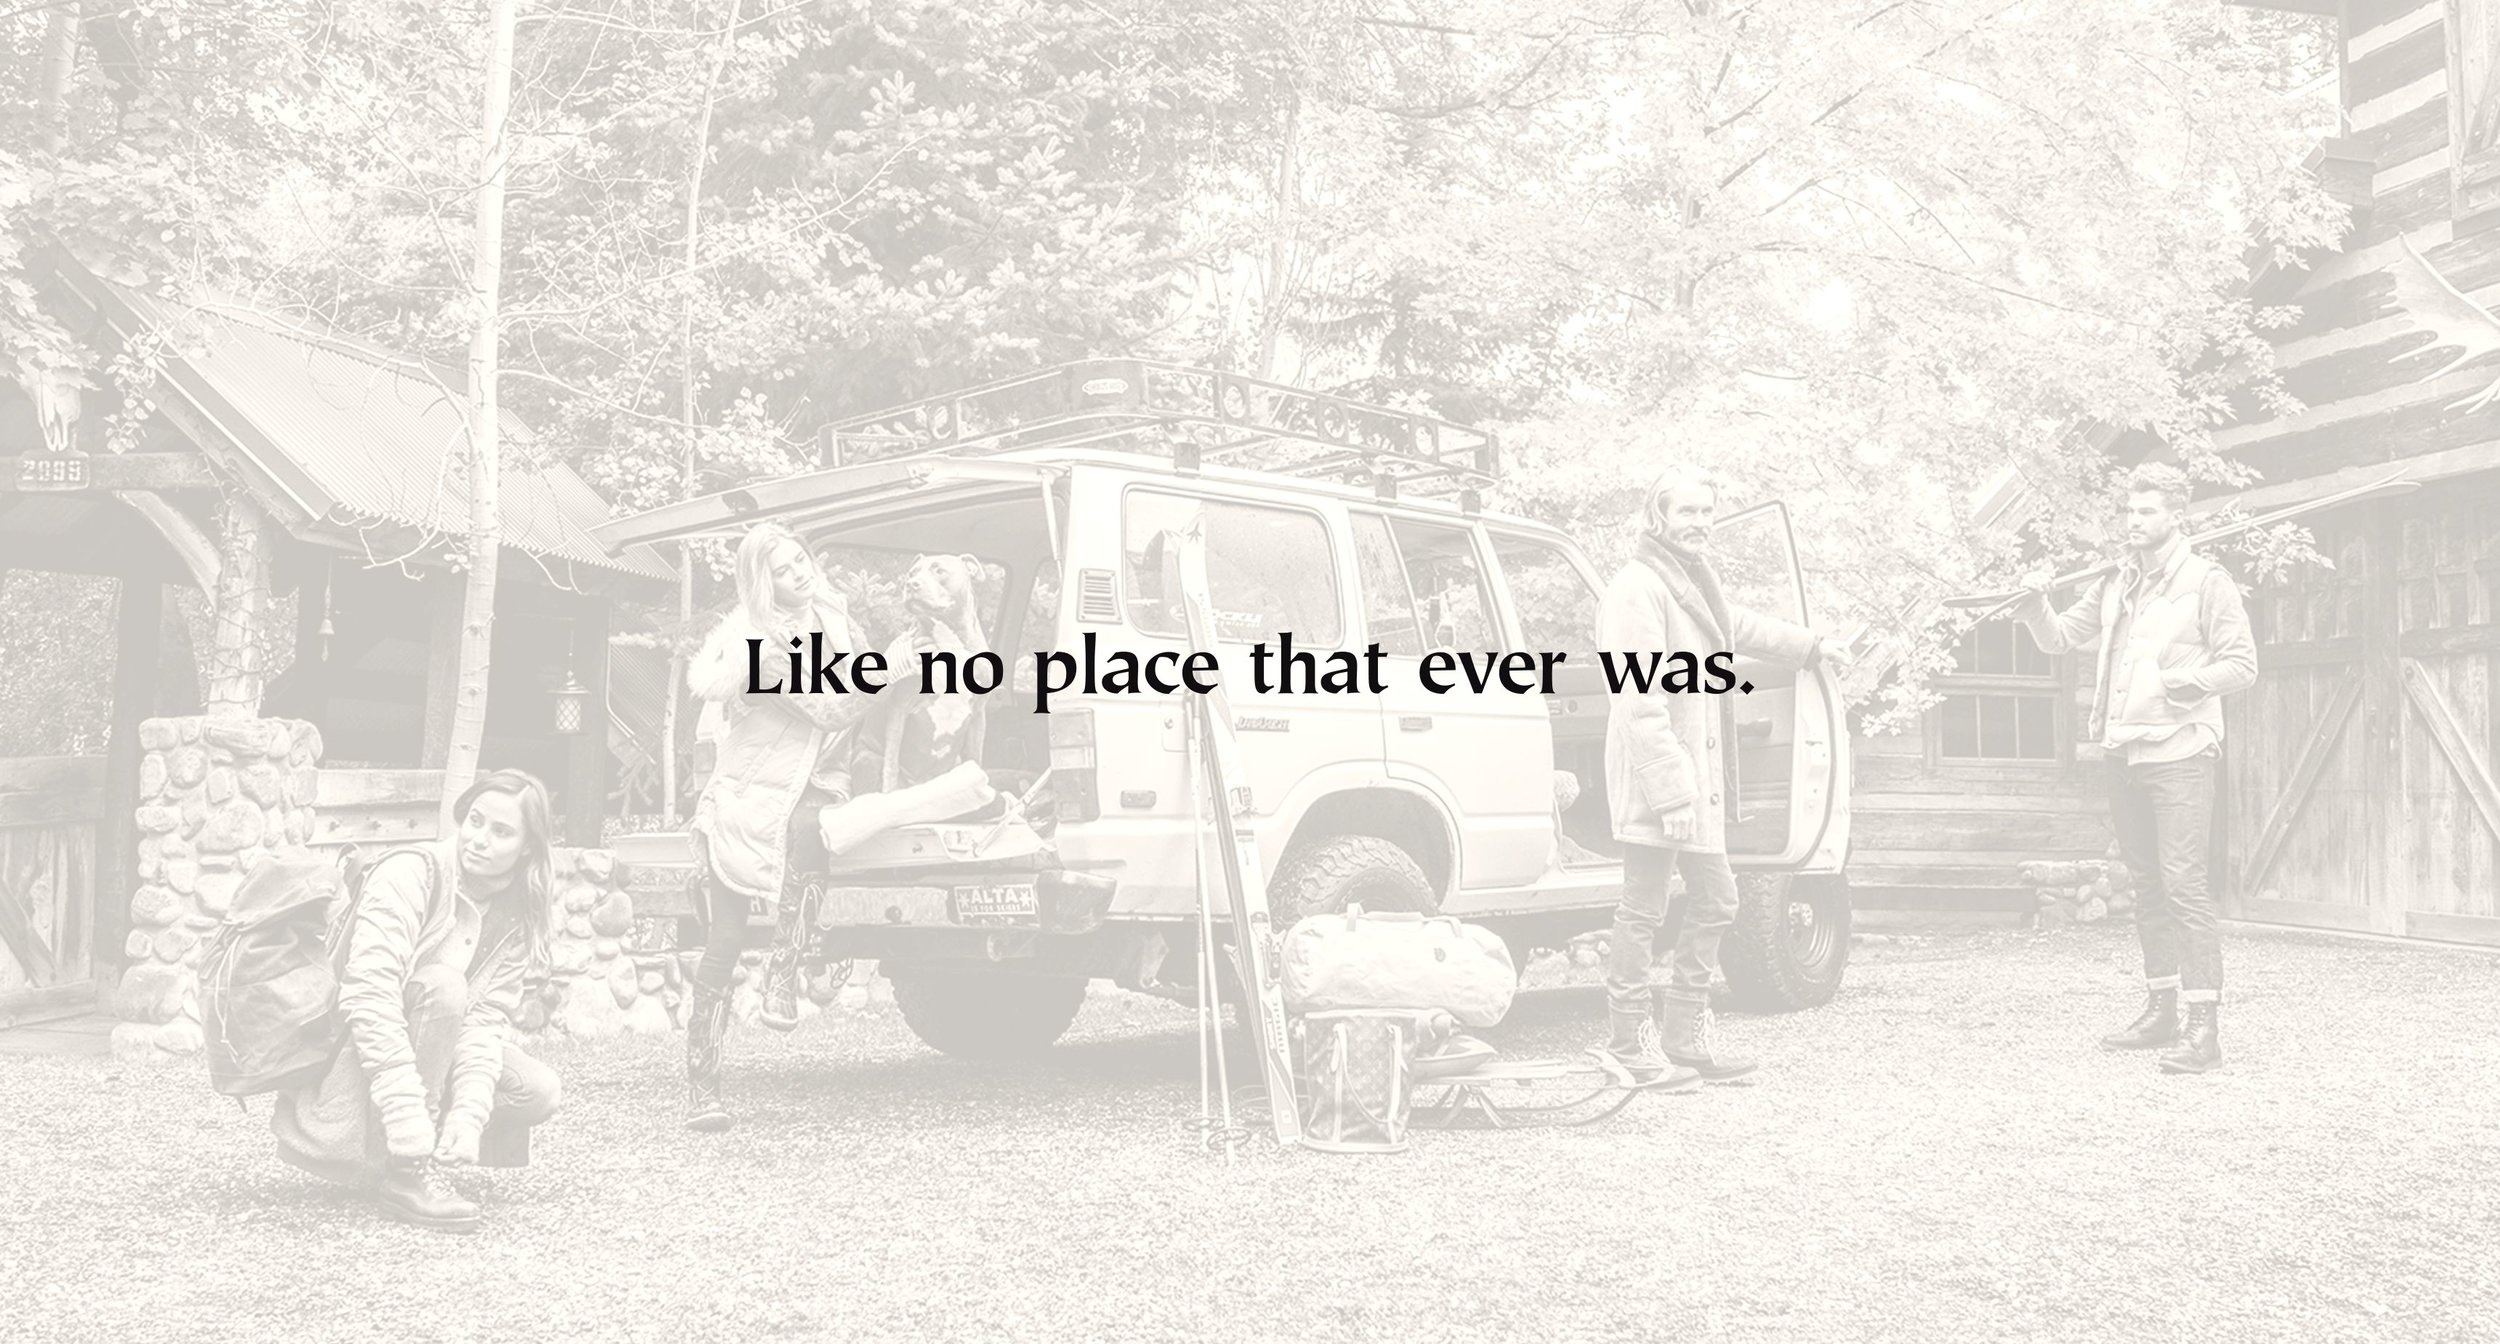 Like no place that ever was - sepia photo advertisement